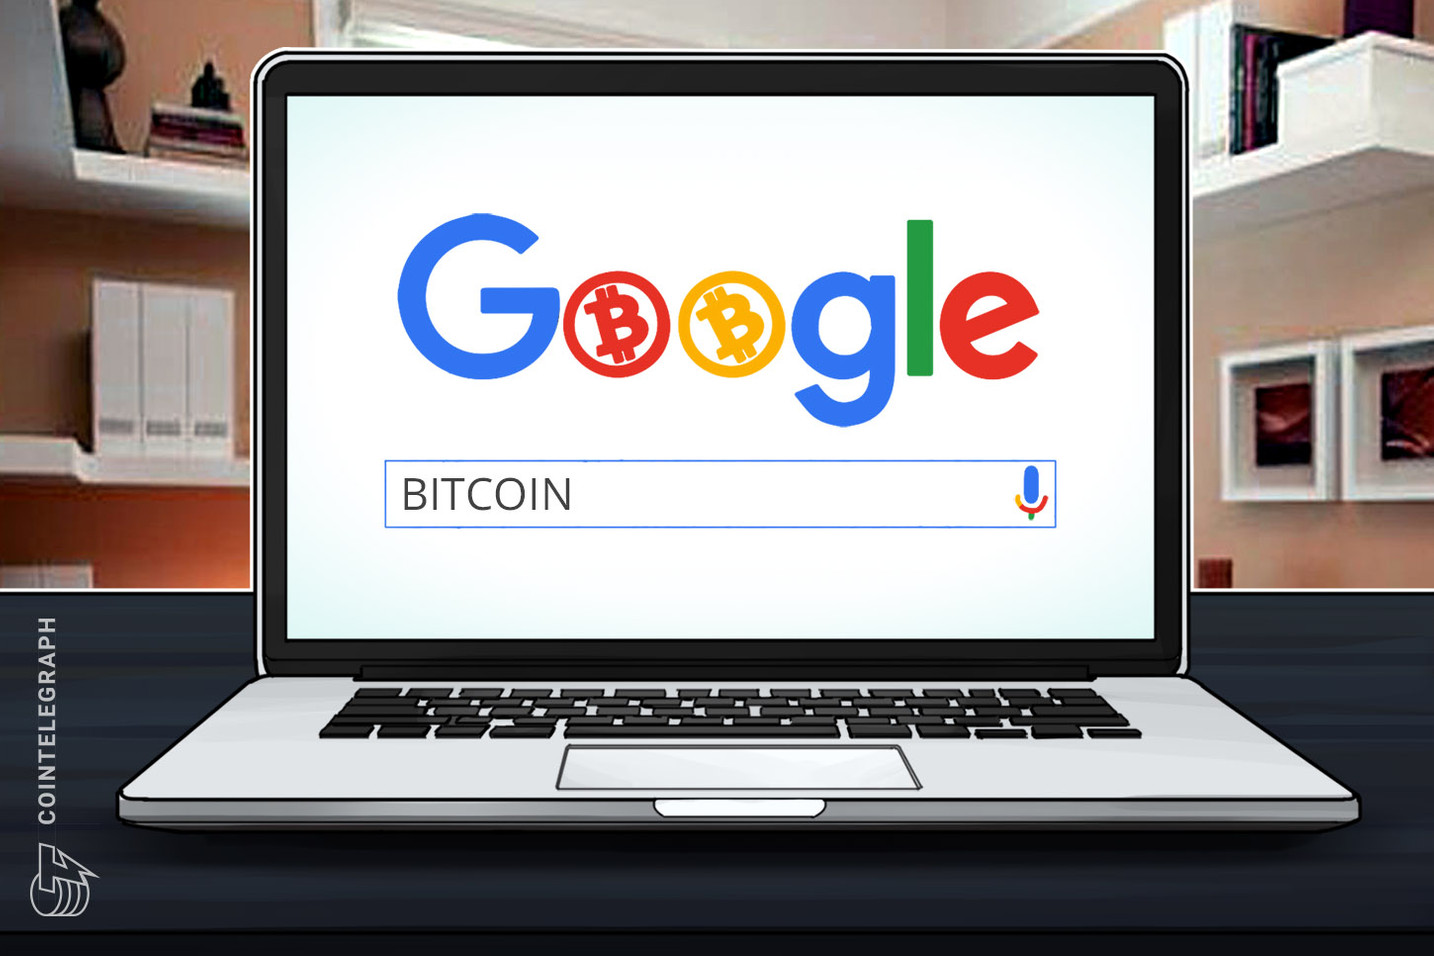 Google Searches for 'Bitcoin' Starting to Catch Up With $10K Euphoria